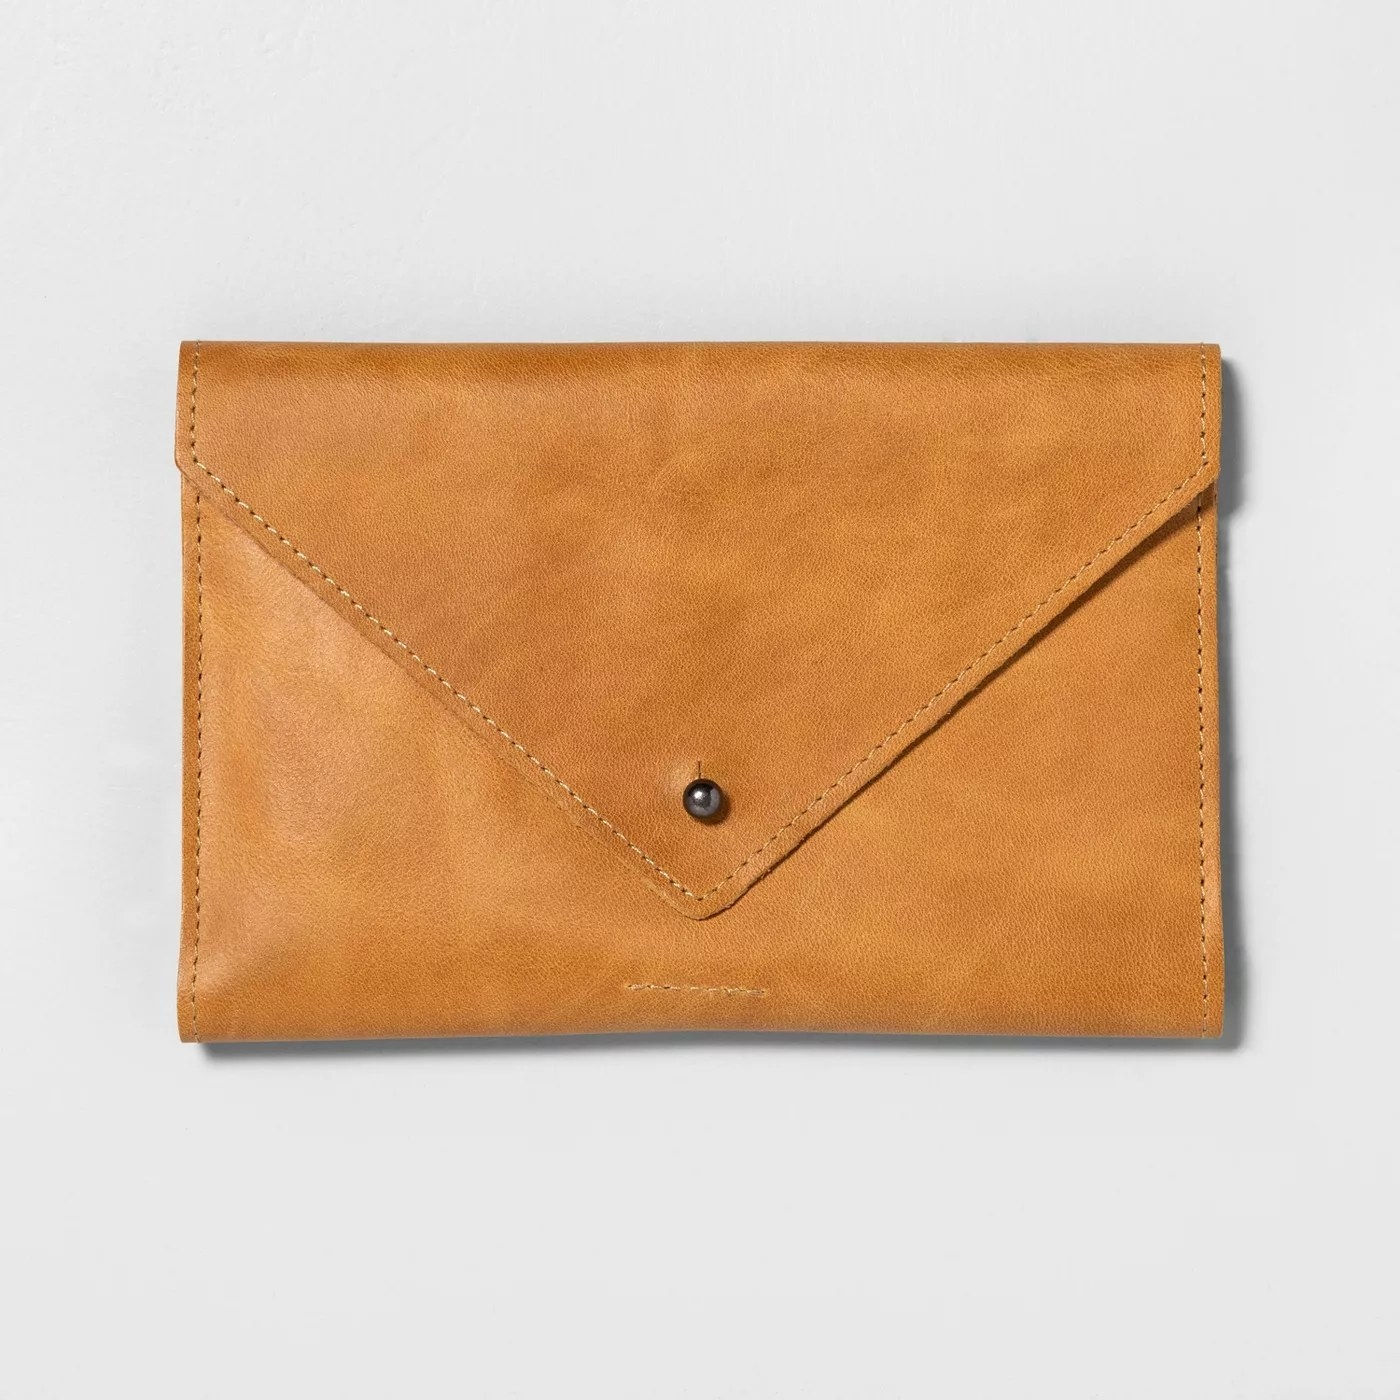 The cognac leather wallet